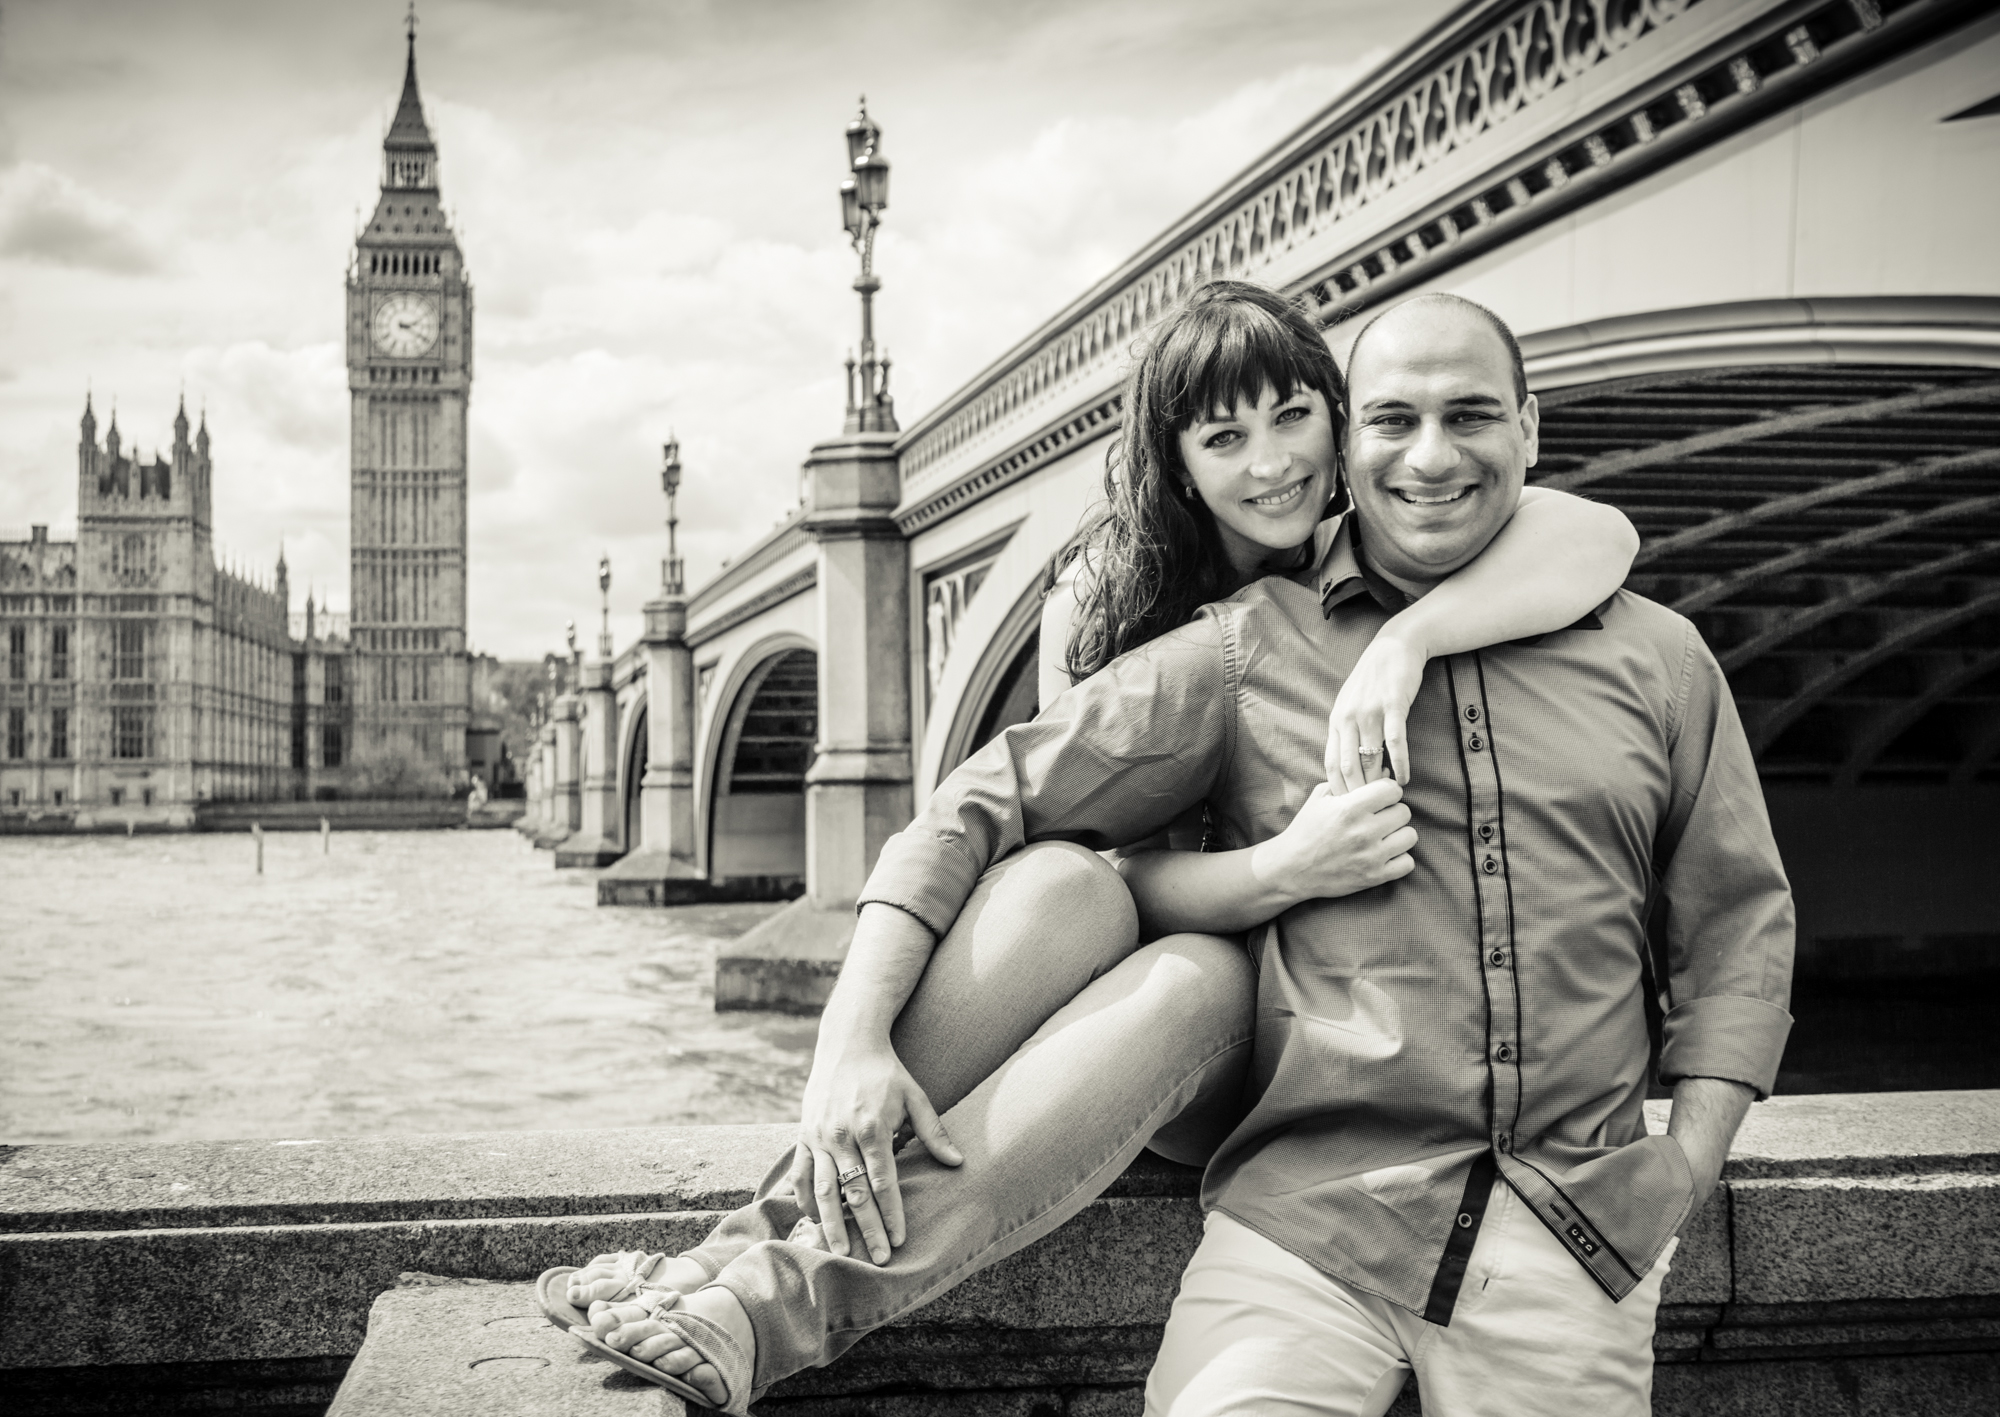 London sightseers photography